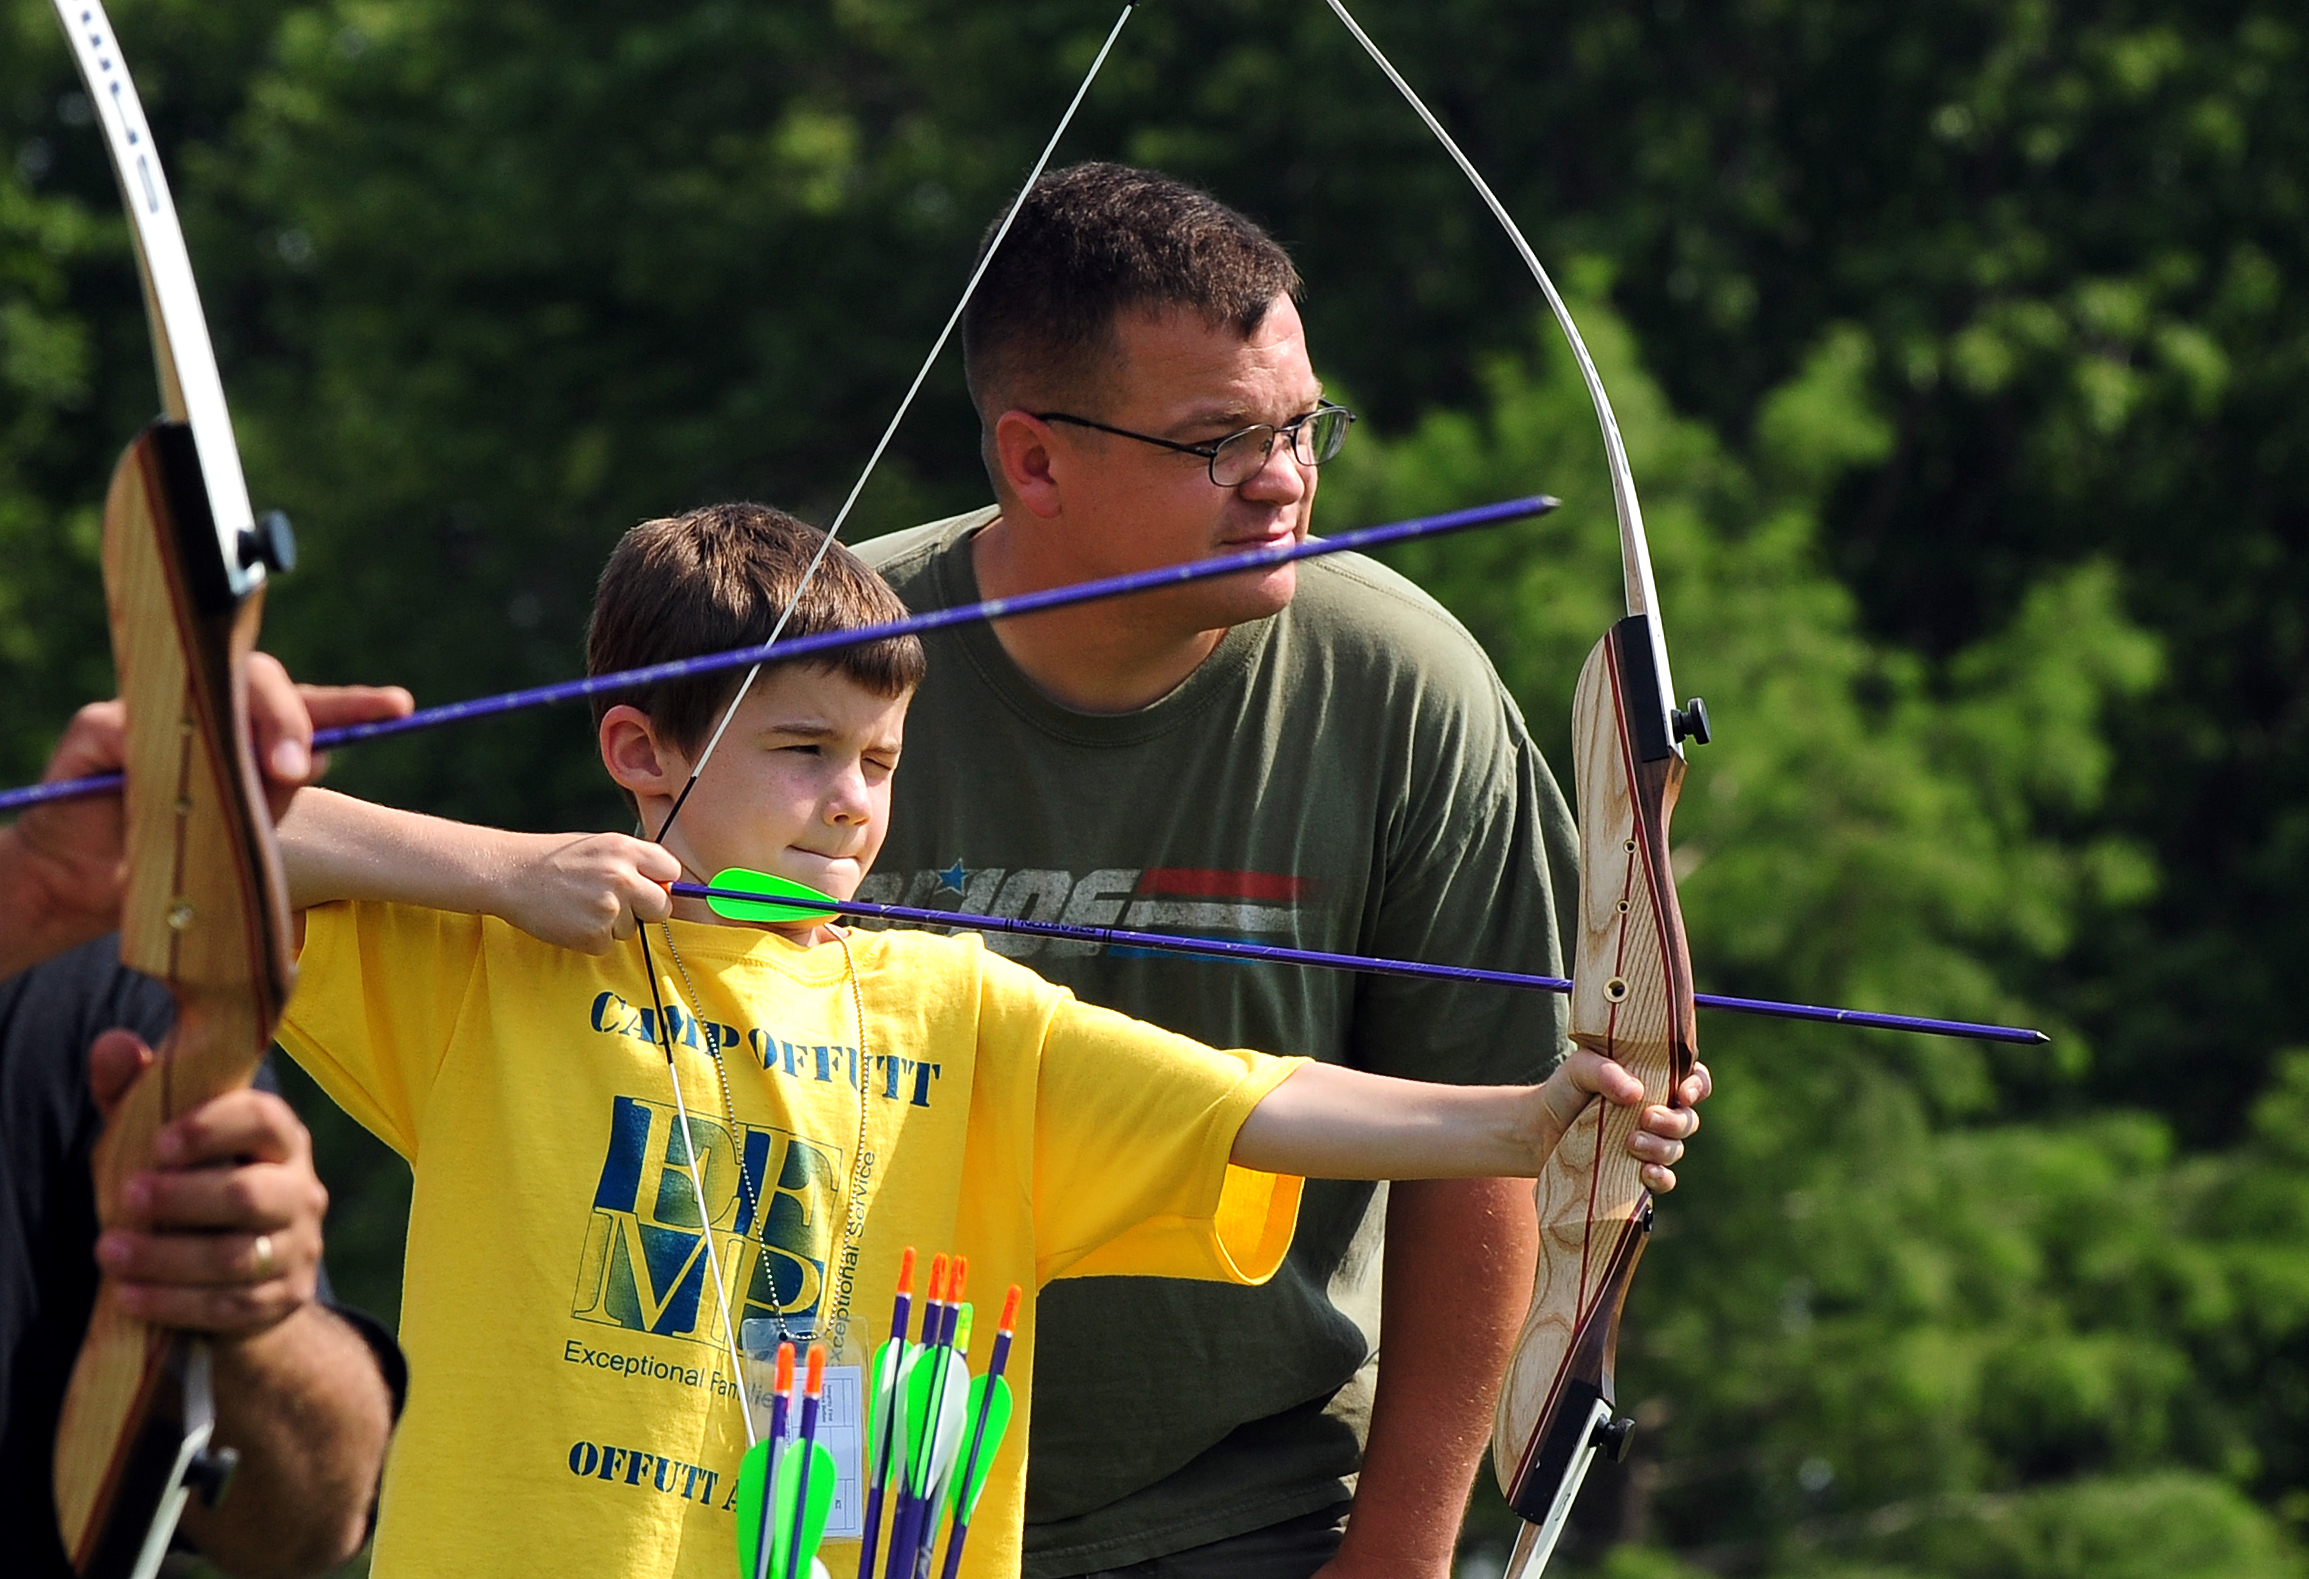 http://www.offutt.af.mil/News/Article/311604/base-lake-hosts-special-summer-camp/